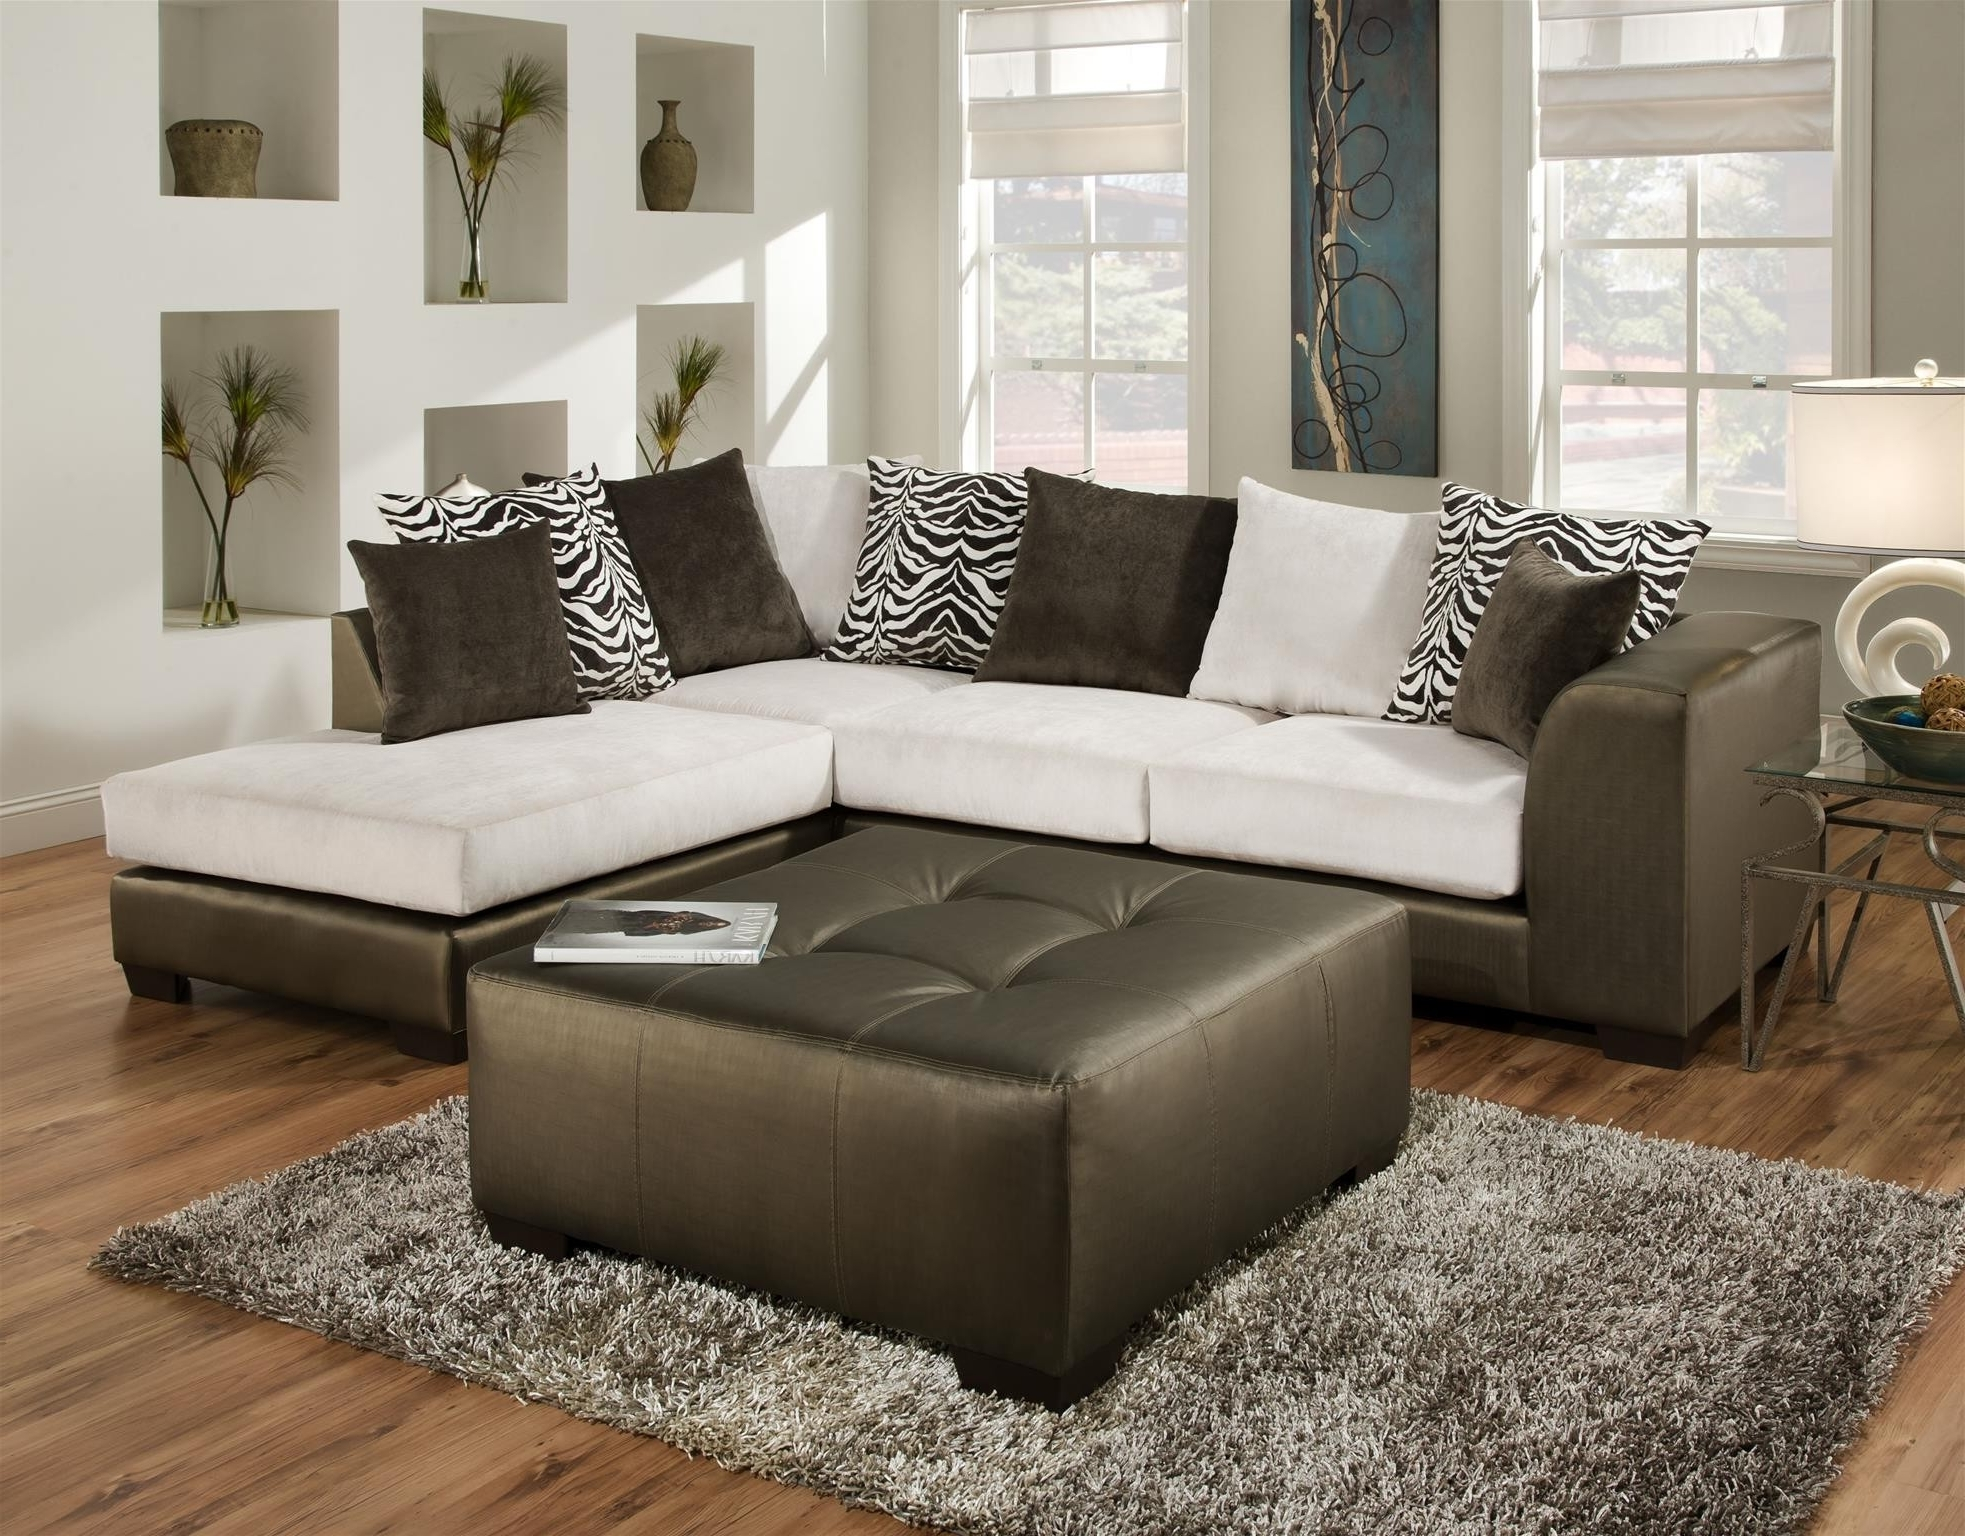 New Sectional Sofa Tampa – Buildsimplehome Within Latest Tampa Sectional Sofas (View 10 of 20)